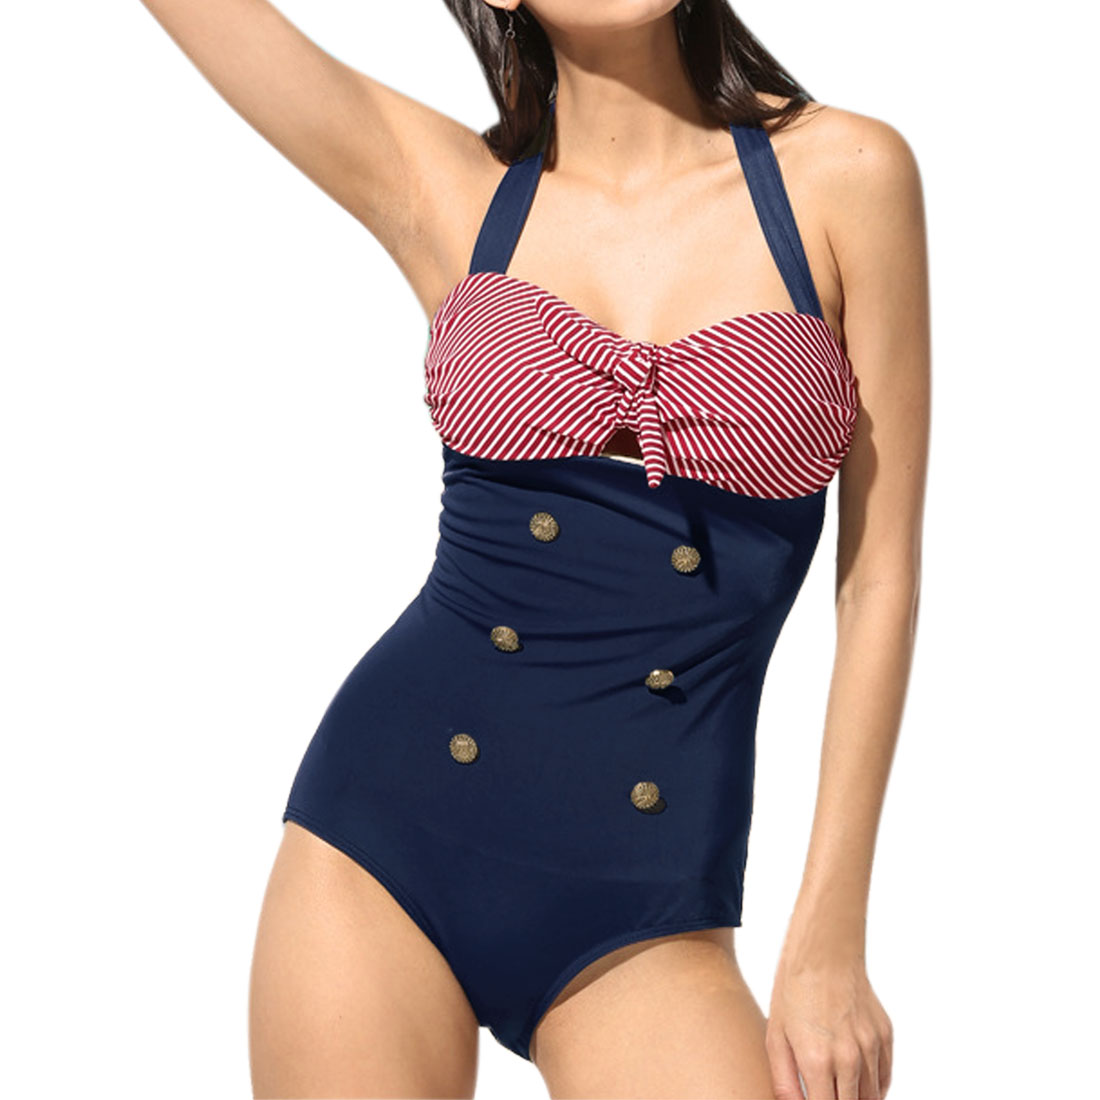 Unique Bargains Women Vintage One Piece Swimsuit US 12 Red Striped Bow Halter Bathing Suit Navy